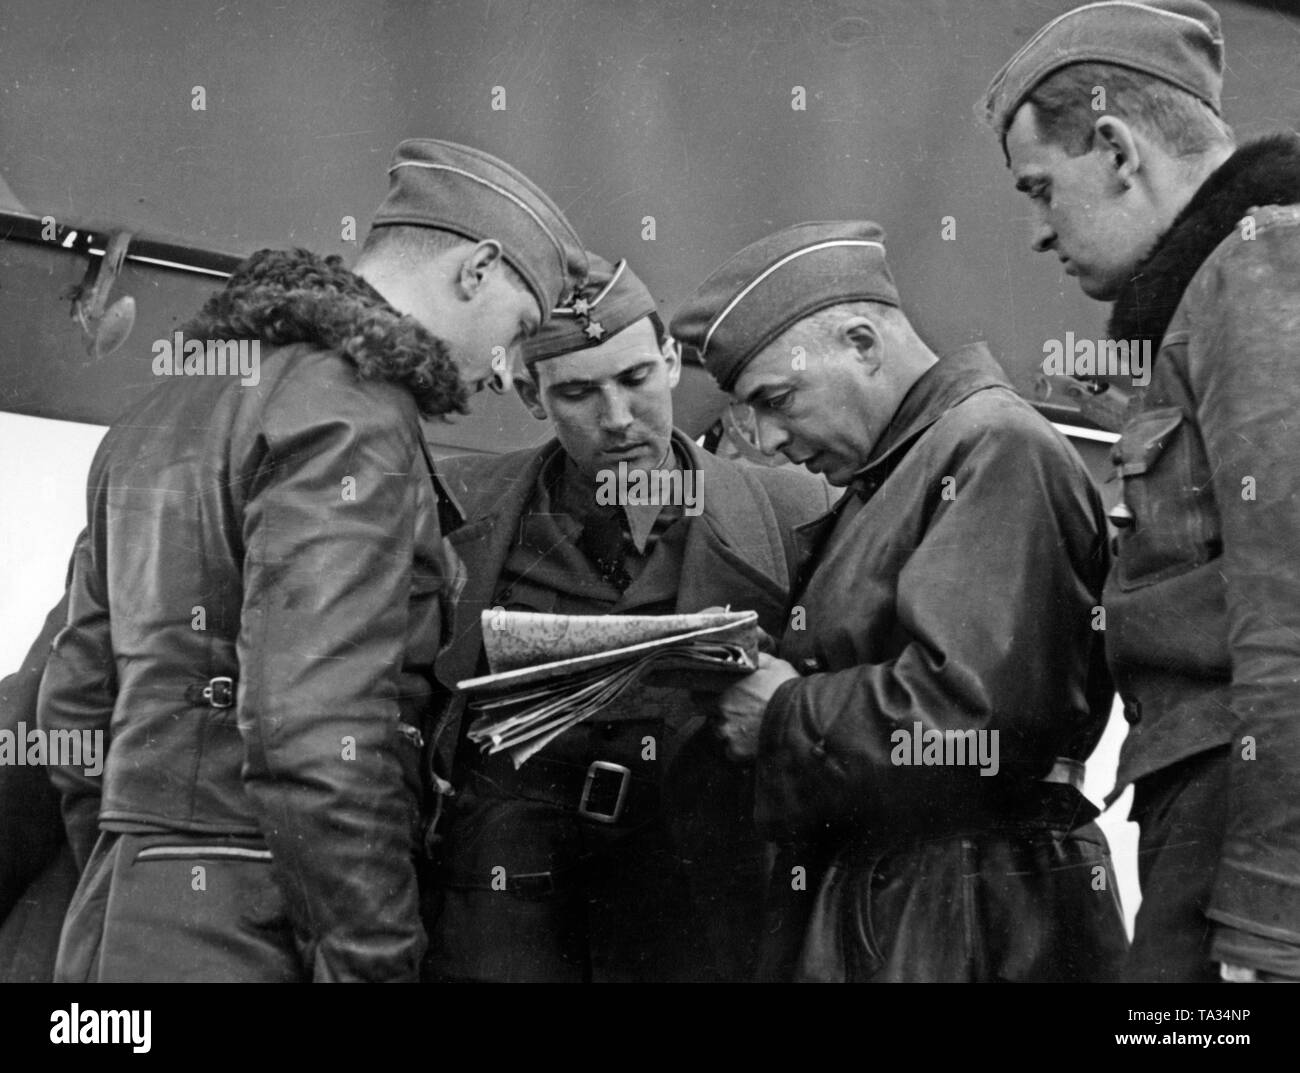 Photo of a briefing of fighter pilots with a commander (center, with a map) of a squadron of the Condor Legion under a wing of an airplane. - Stock Image